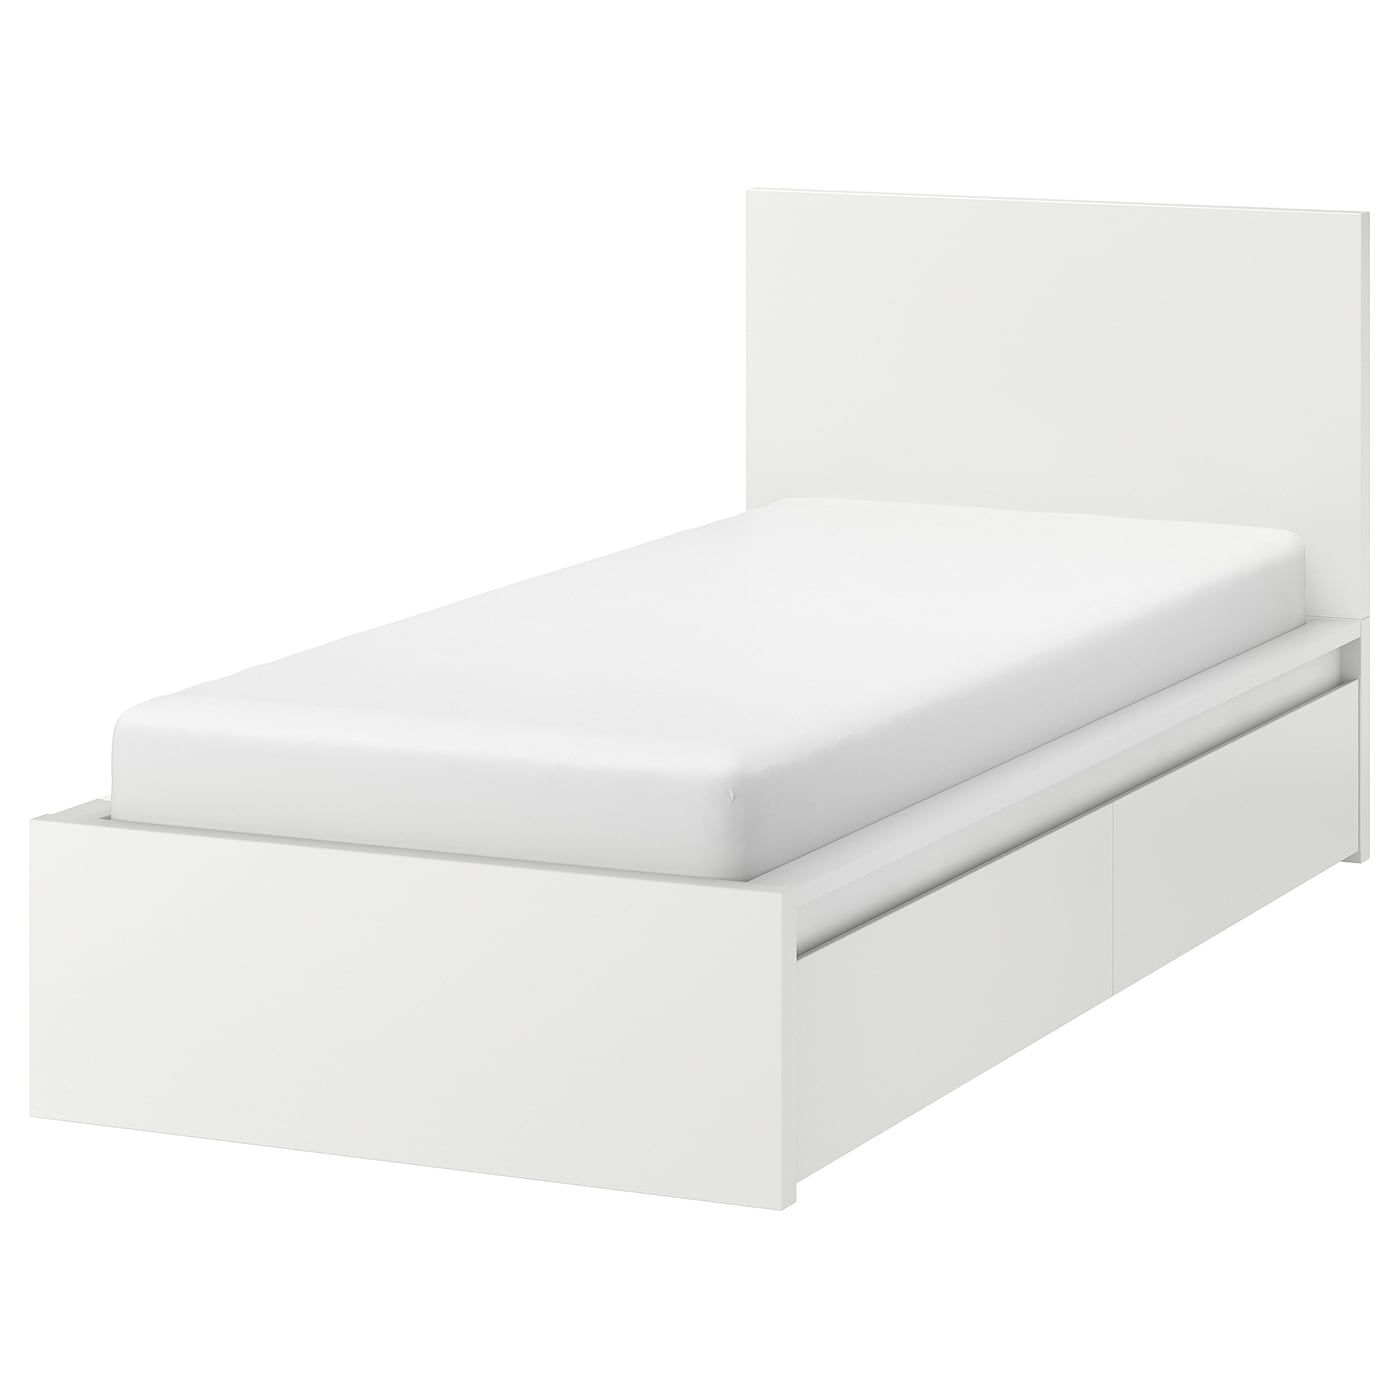 Malm High Bed Frame 2 Storage Boxes White Twin Ikea Bed Frame With Storage High Bed Frame Malm Bed Frame